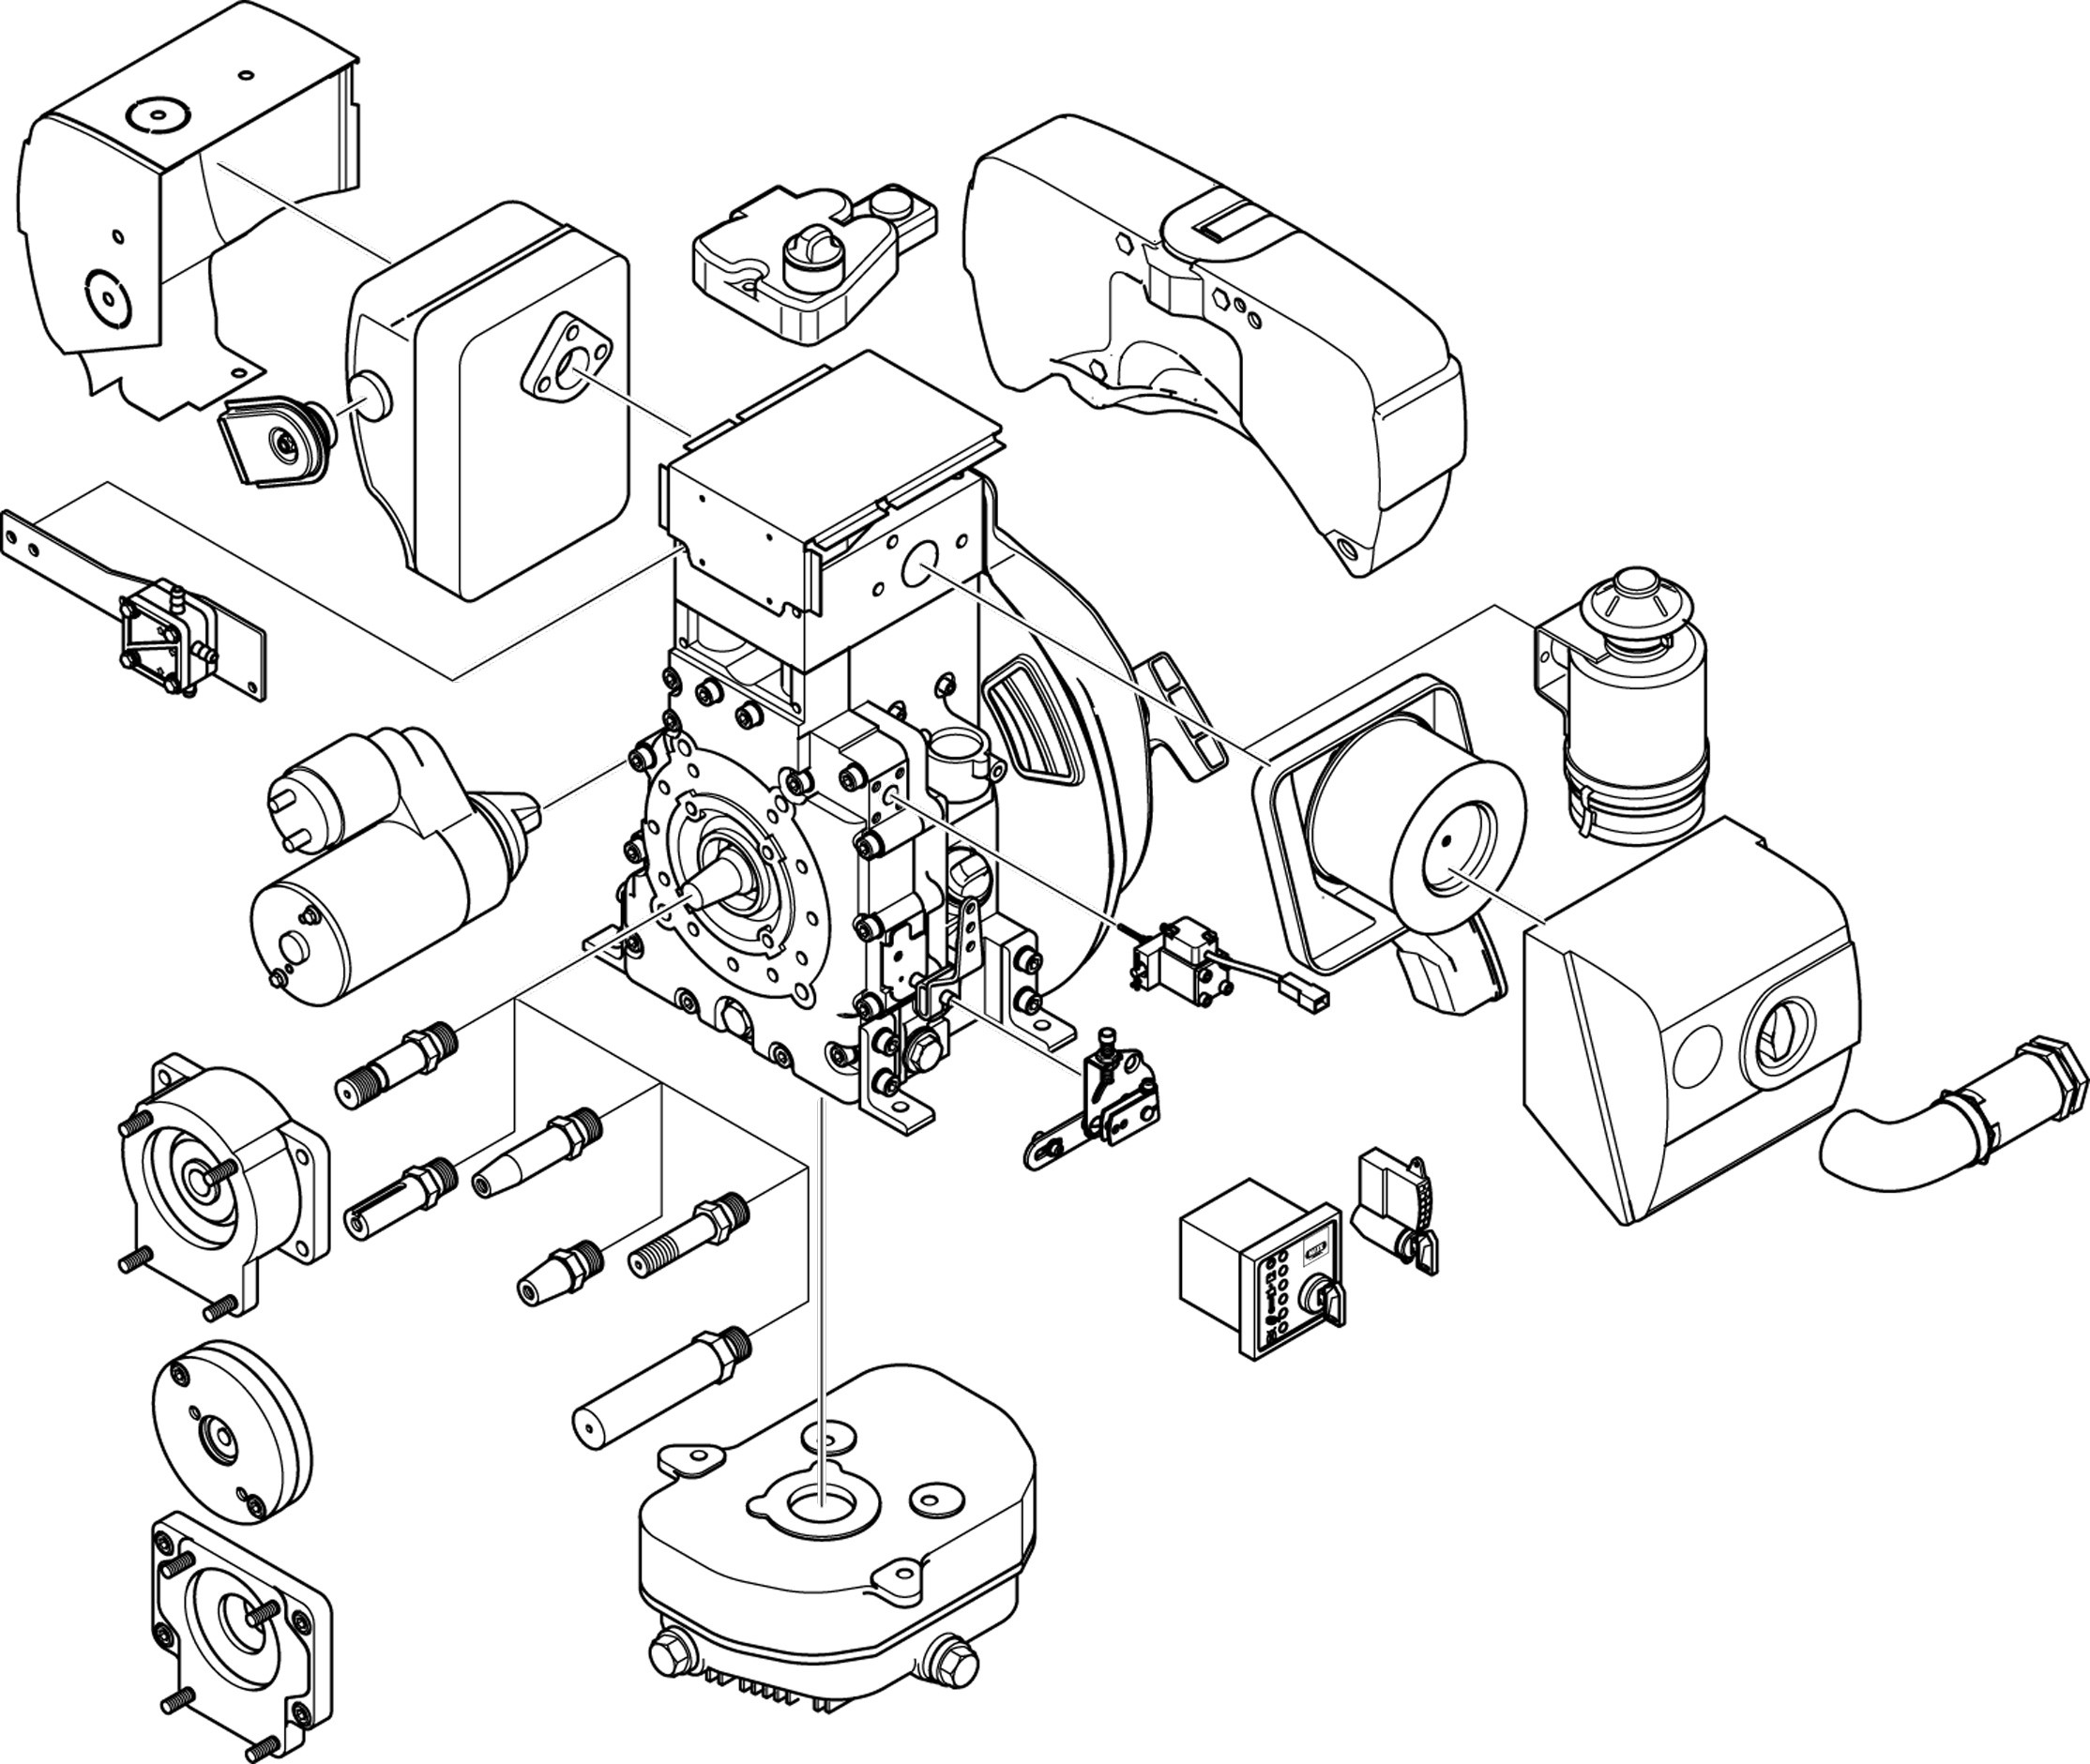 Diesel Engine Parts Diagram Steam Engine Drawing at Getdrawings Of Diesel Engine Parts Diagram